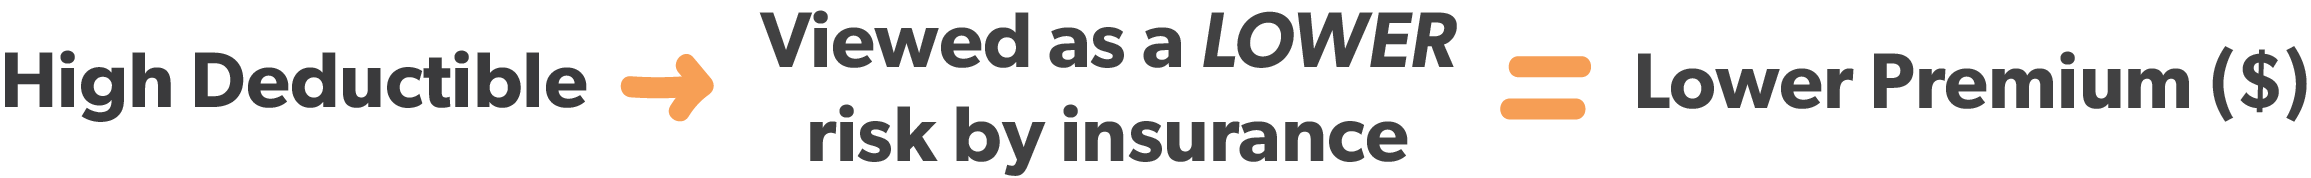 What a low premium means when it comes to your deductible